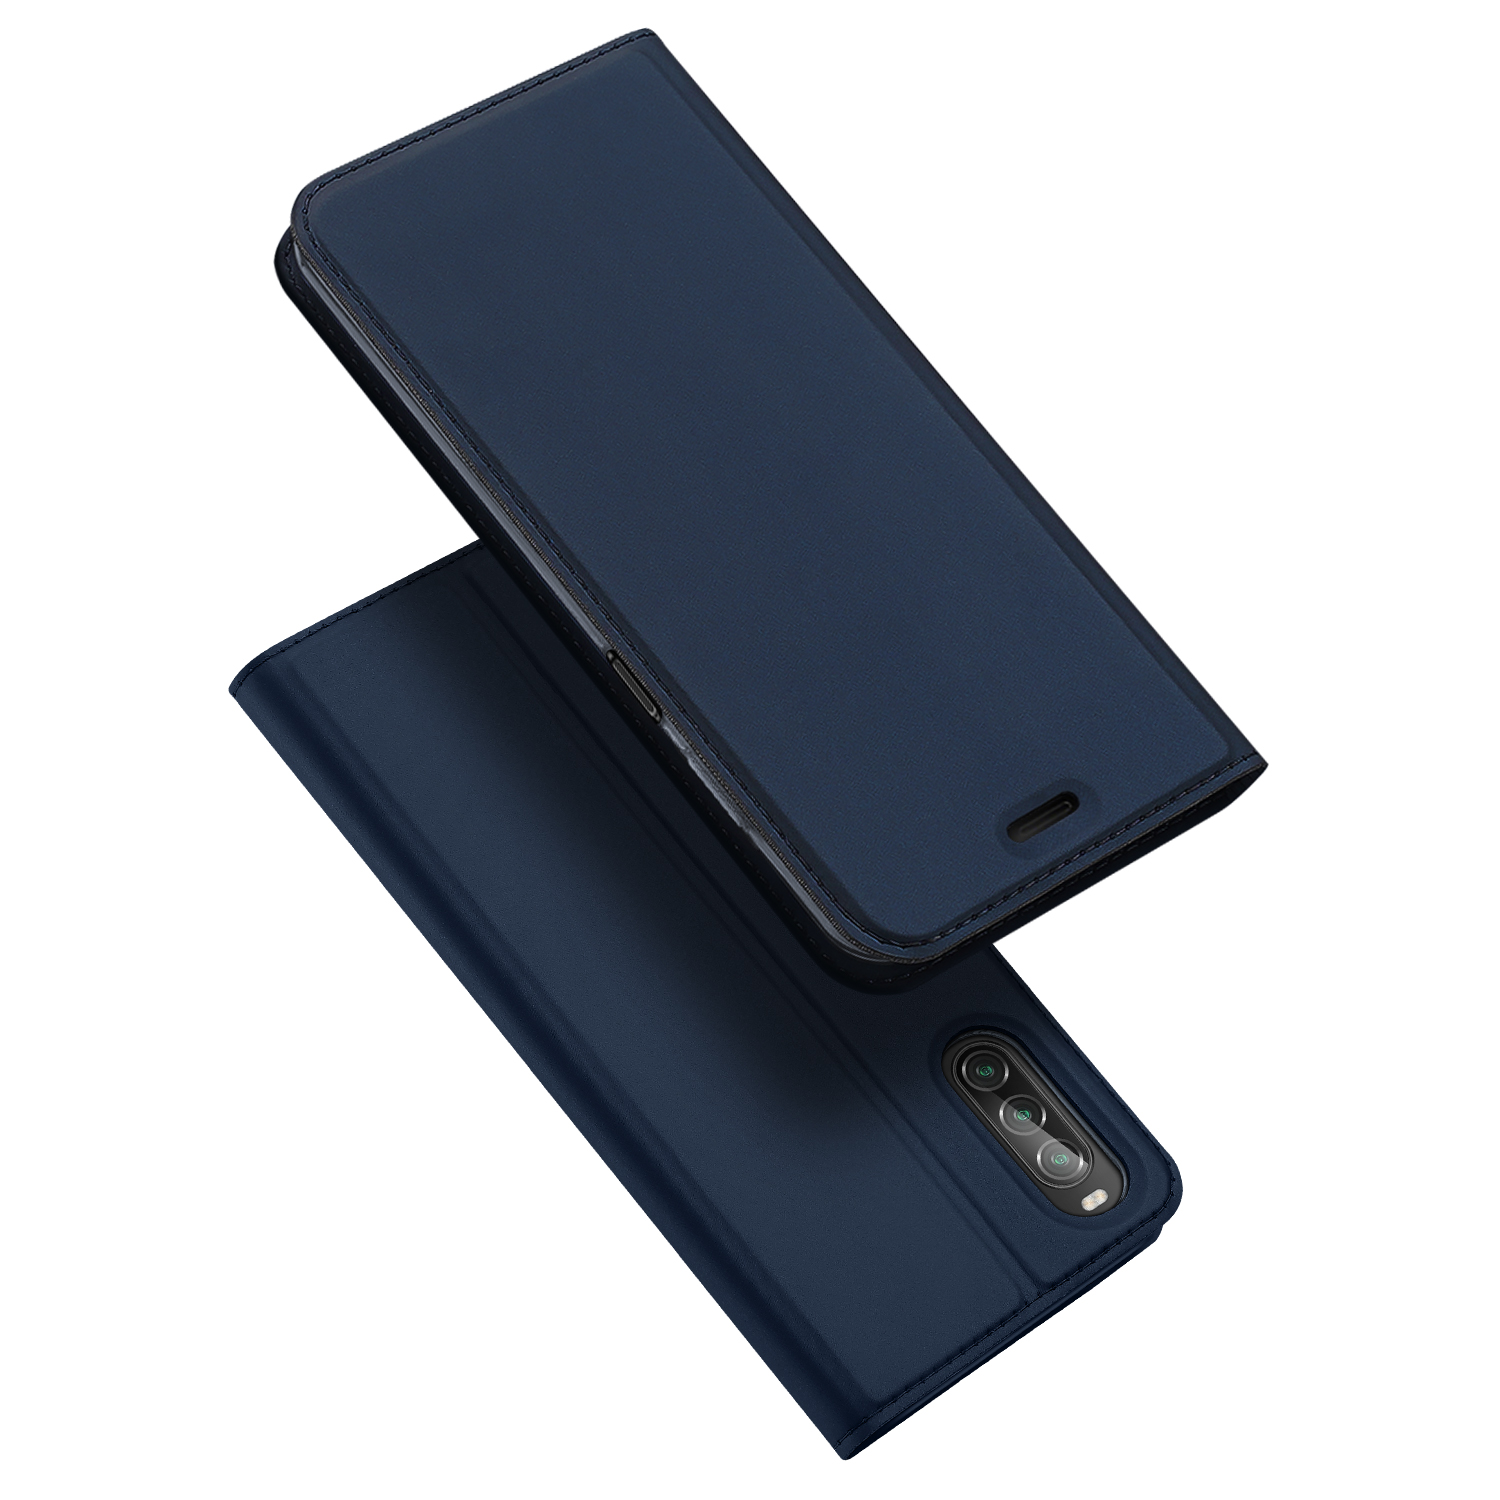 DUX DUCIS For Sony Xperia1 II/Xperia10 II Leather Mobile Phone Cover Magnetic Protective Case Bracket with Cards Slot Royal blue_Sony Xperia10 II